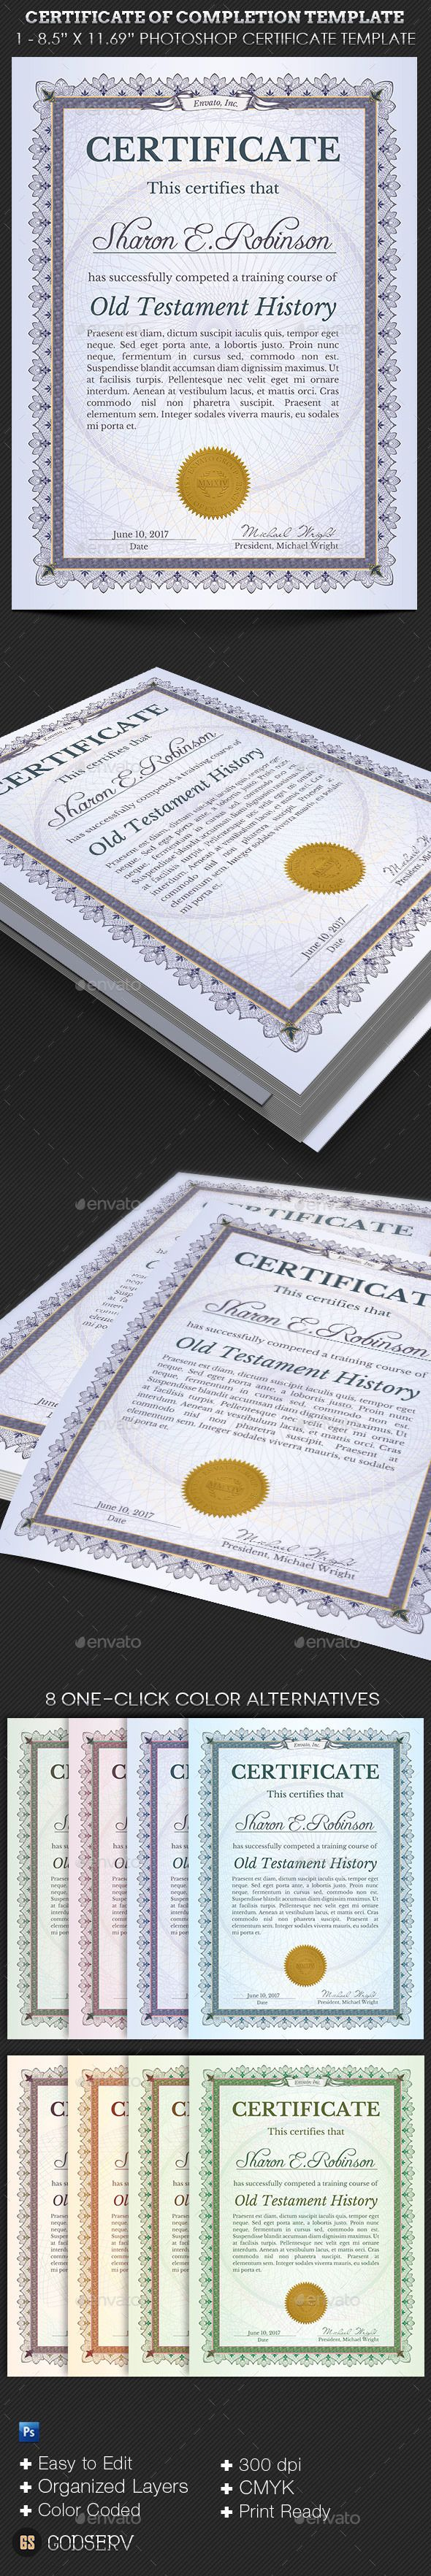 Certificate of Completion Template | Pinterest